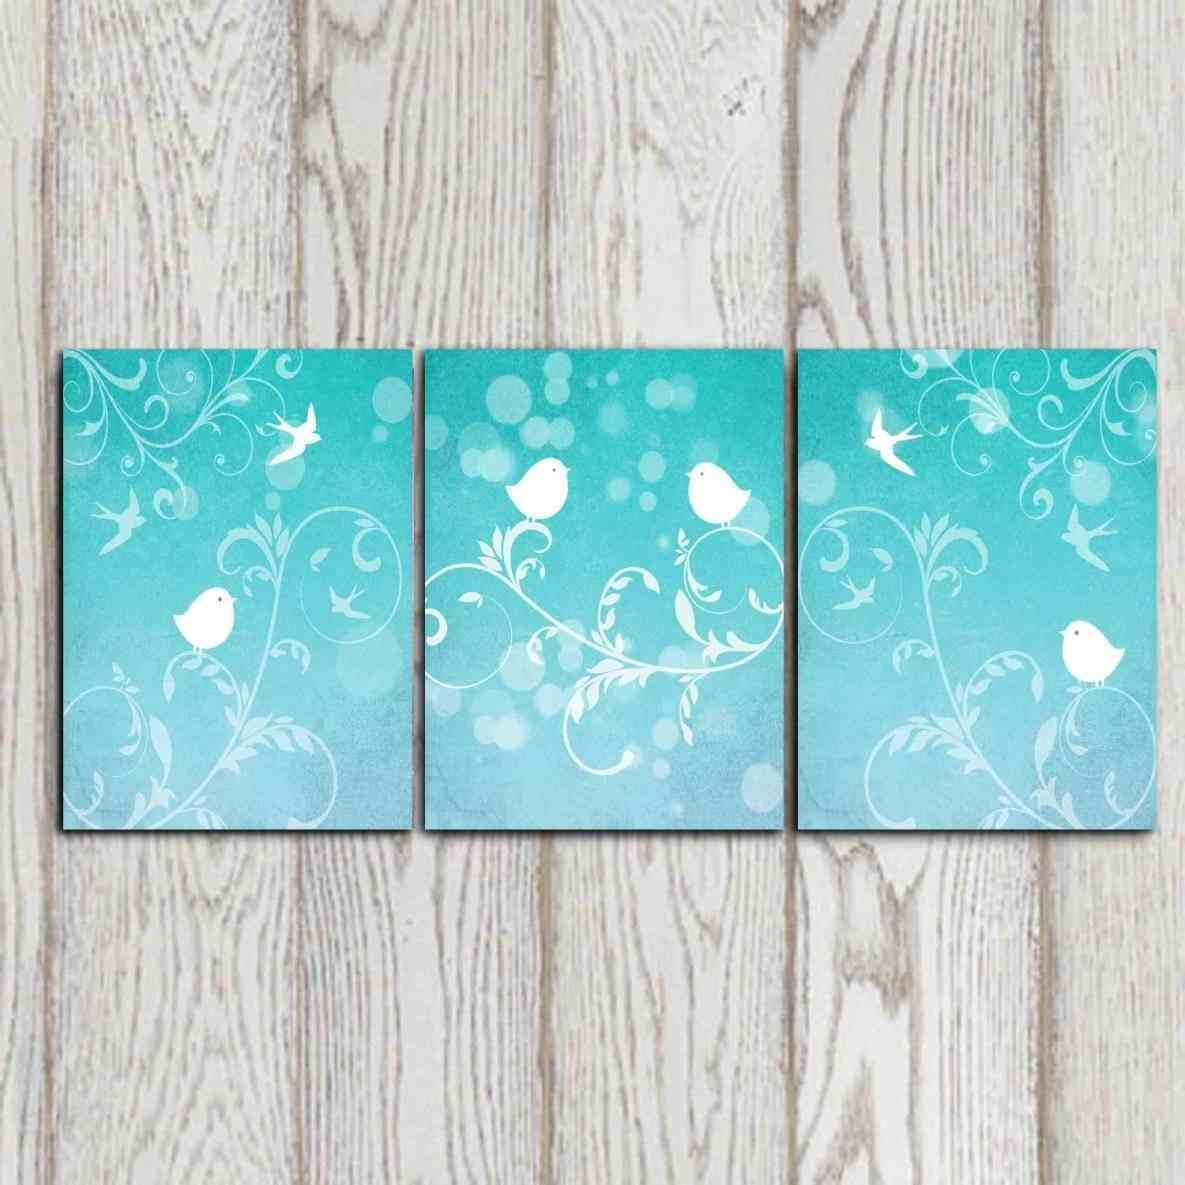 Set Turquoise And Grey Wall Art Of Bird Art Prints Turquoise Wall Regarding Most Current Turquoise Wall Art (View 11 of 20)